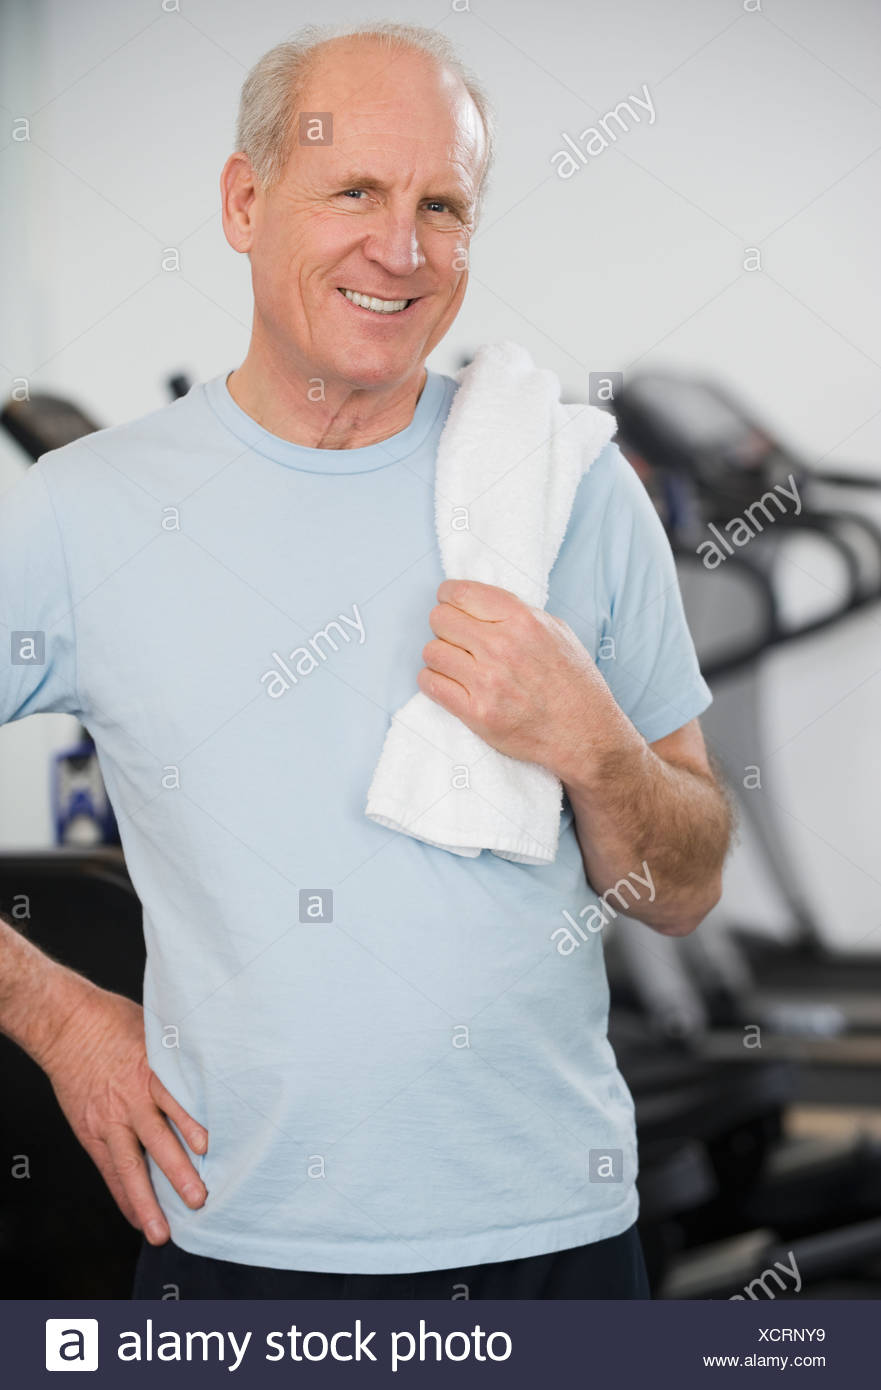 Senior man in front of exercise machines - Stock Image